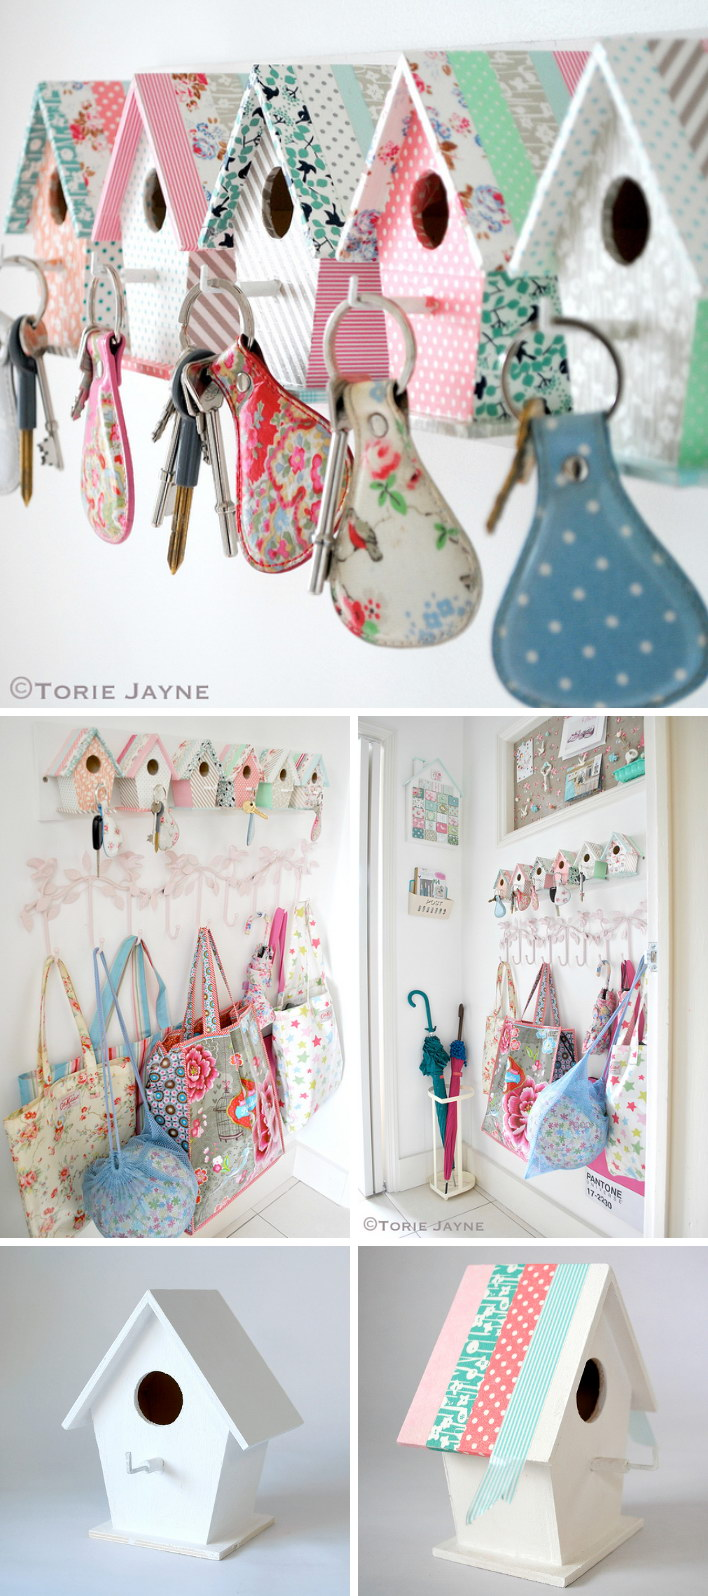 Diy bedroom decor ideas - Diy Easy Bird House Key Hooks